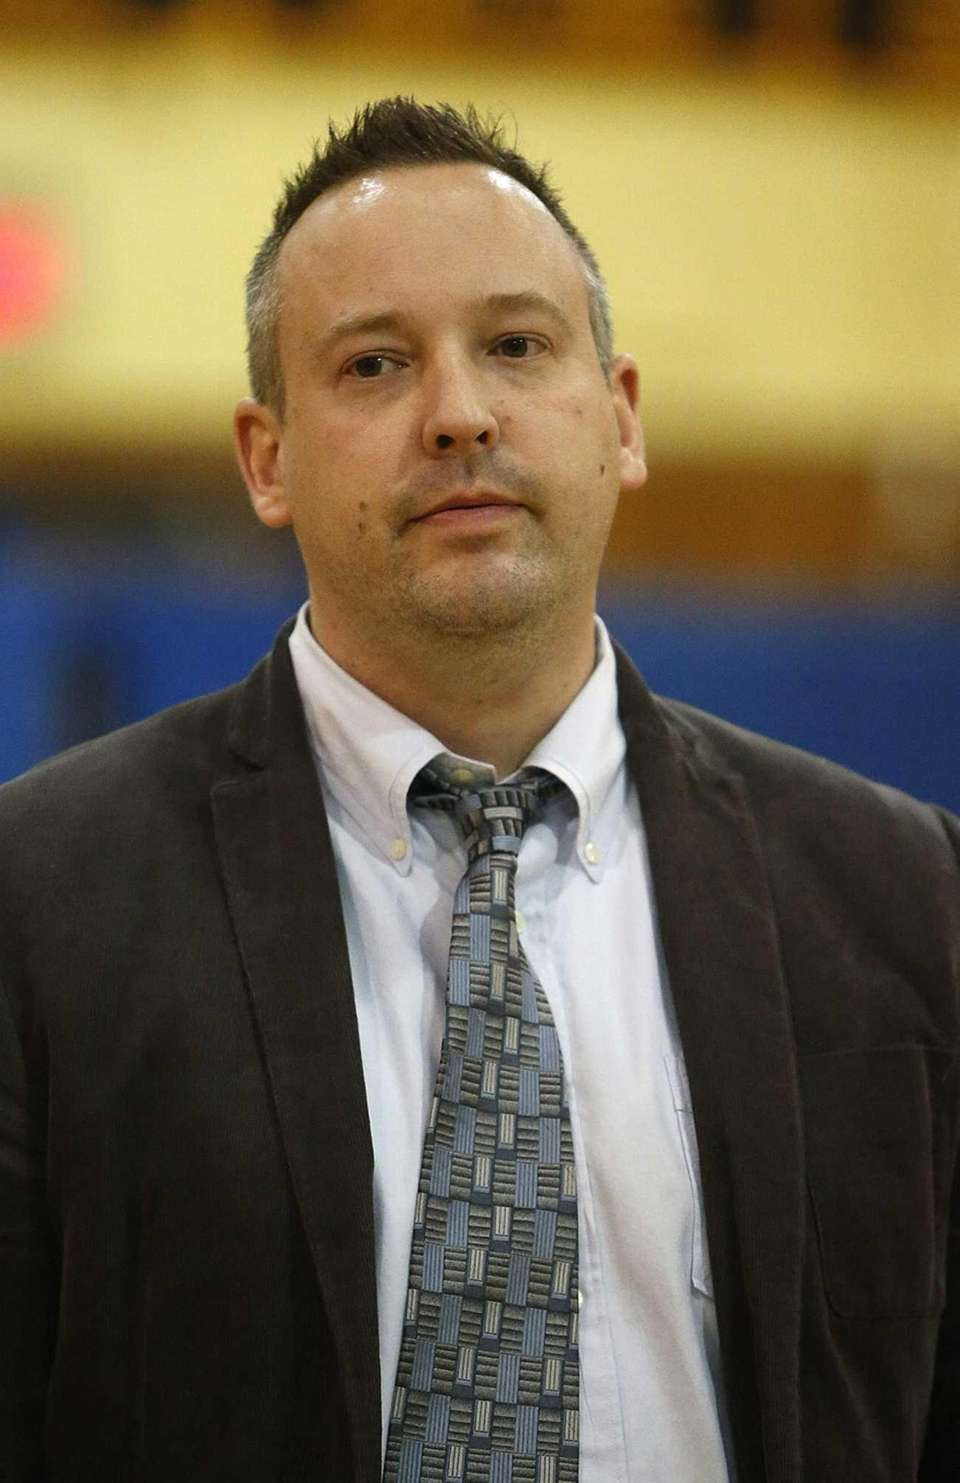 Wantagh boys varsity basketball head coach Keith Hunter